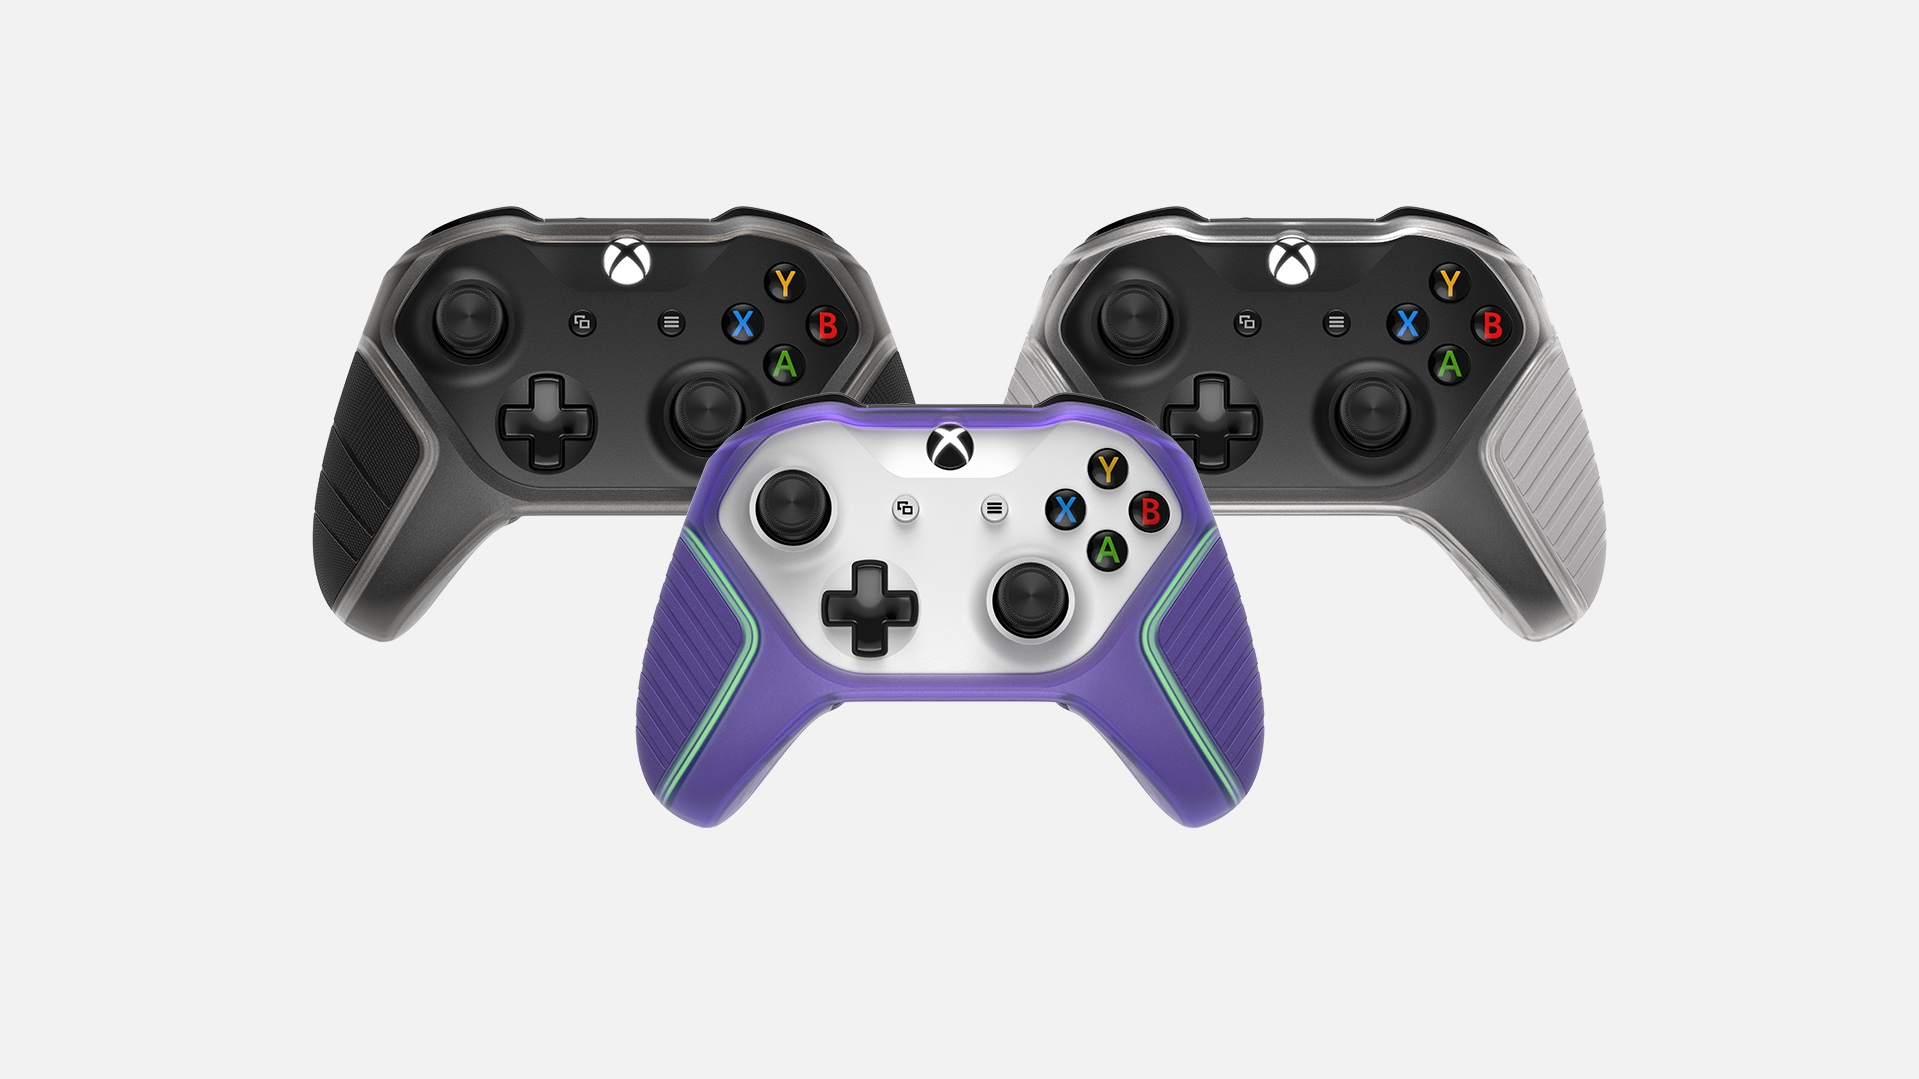 Three Xbox controllers featuring the Otterbox Easy Grip Controller Shell